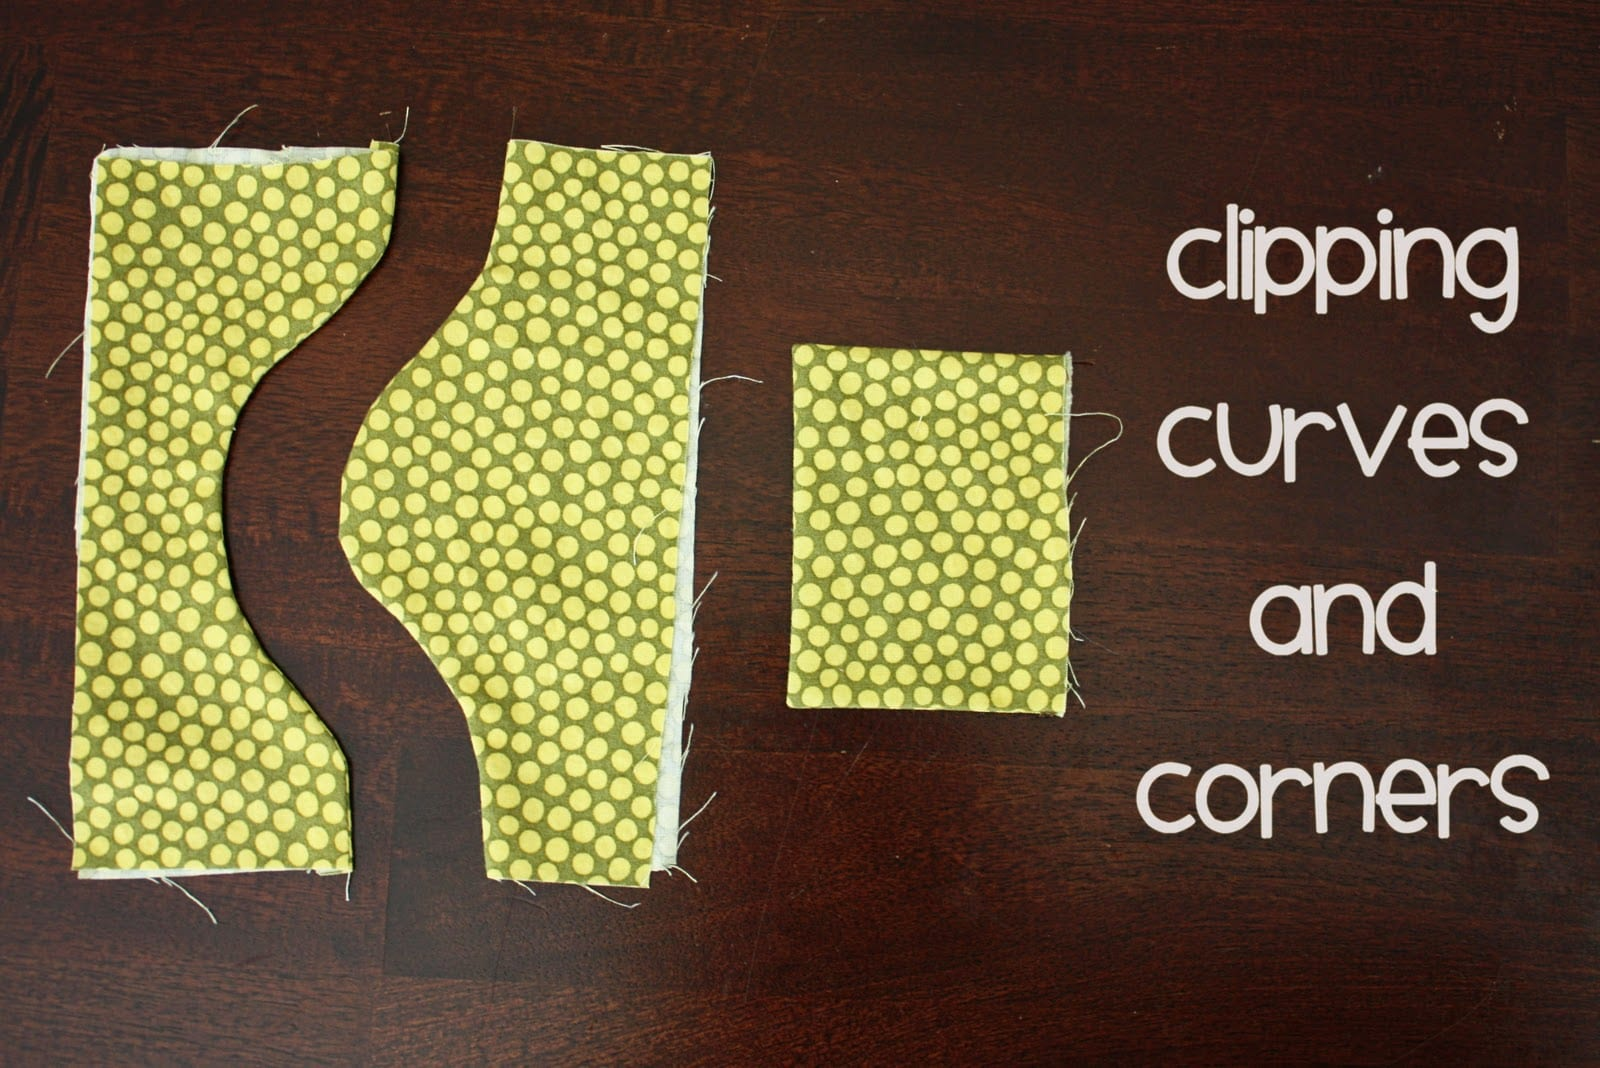 Sewing Tips – Clipping Corners and Curves